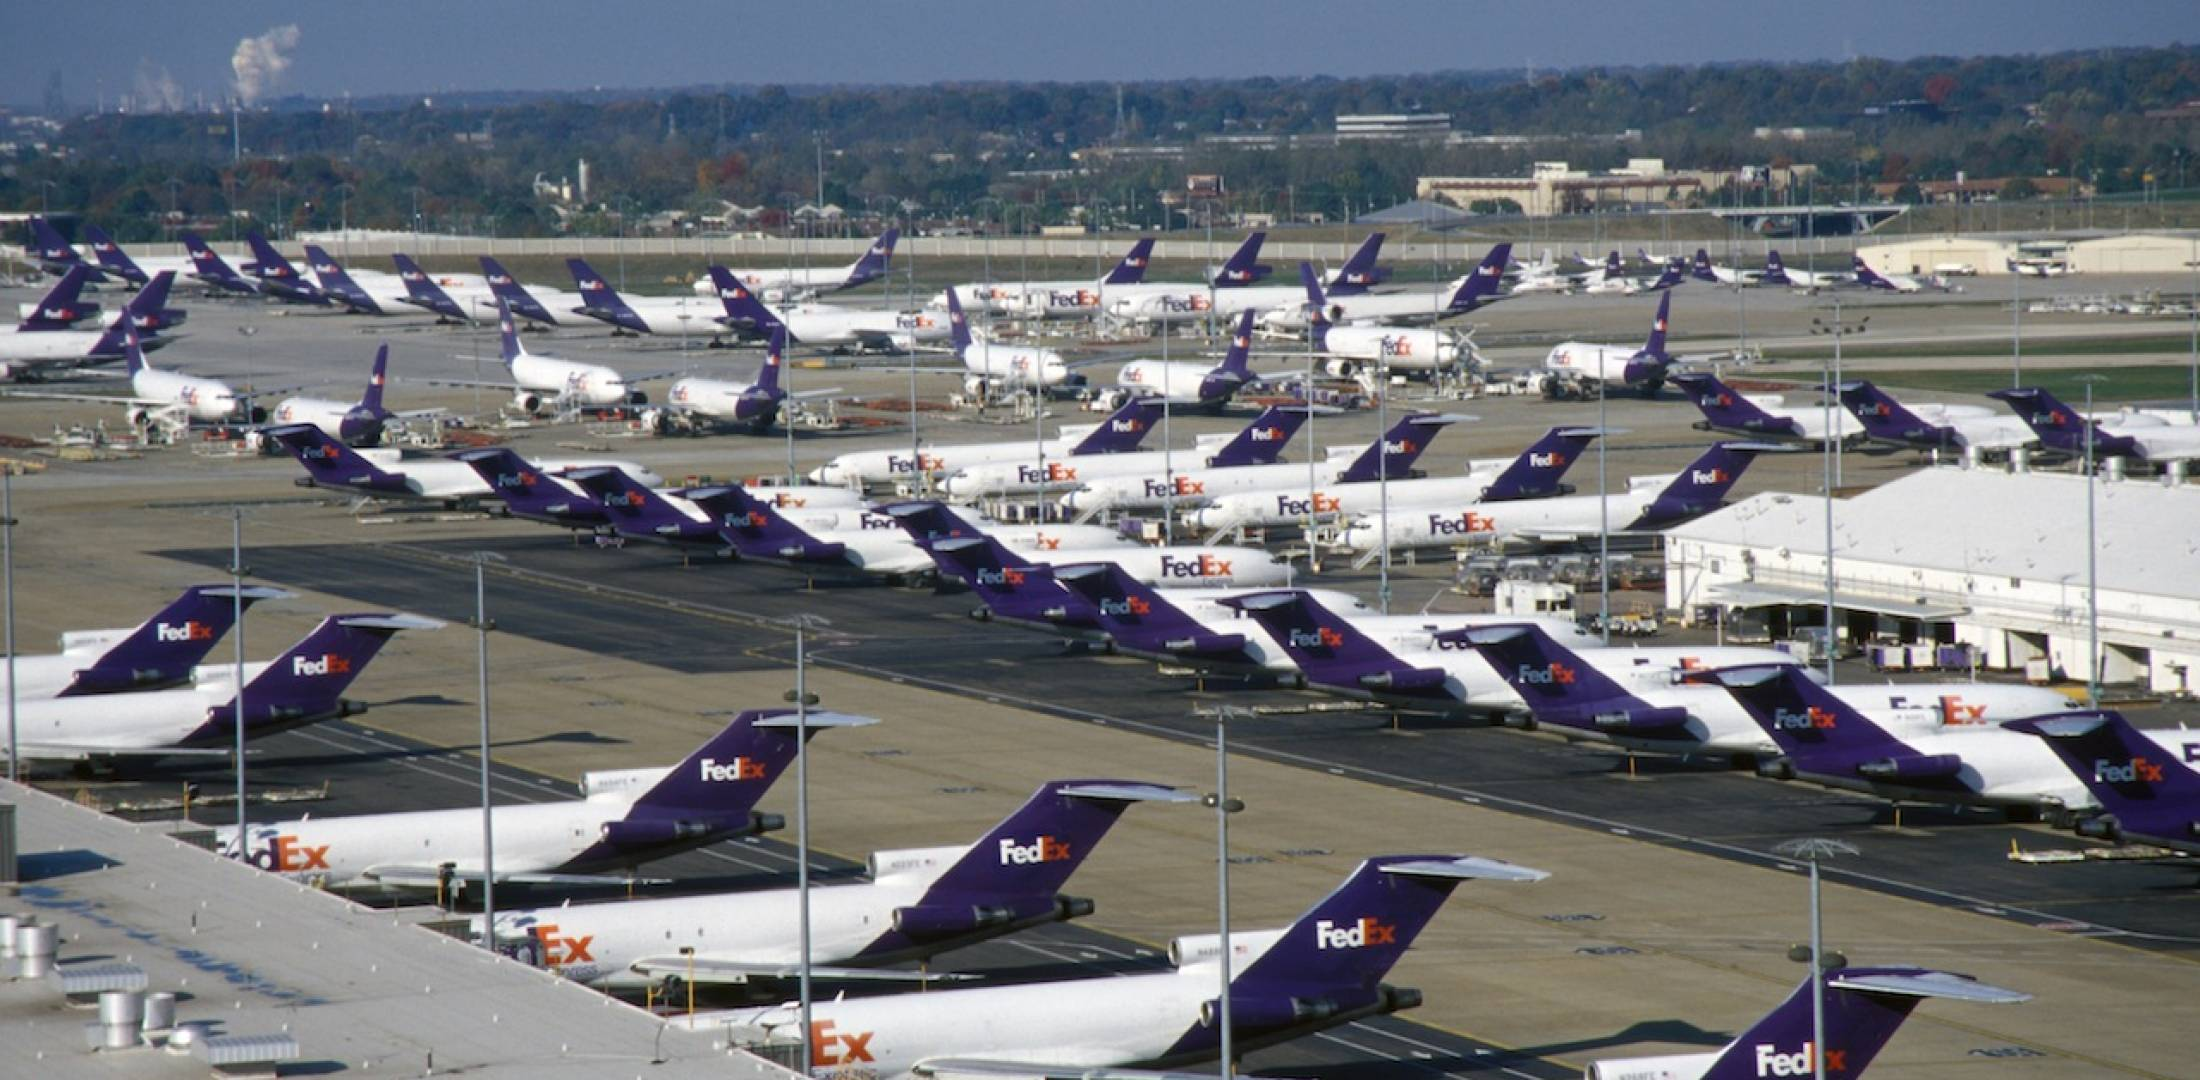 FedEx Retires More Jets As Cargo Markets Stagnate  Air Transport News Aviat